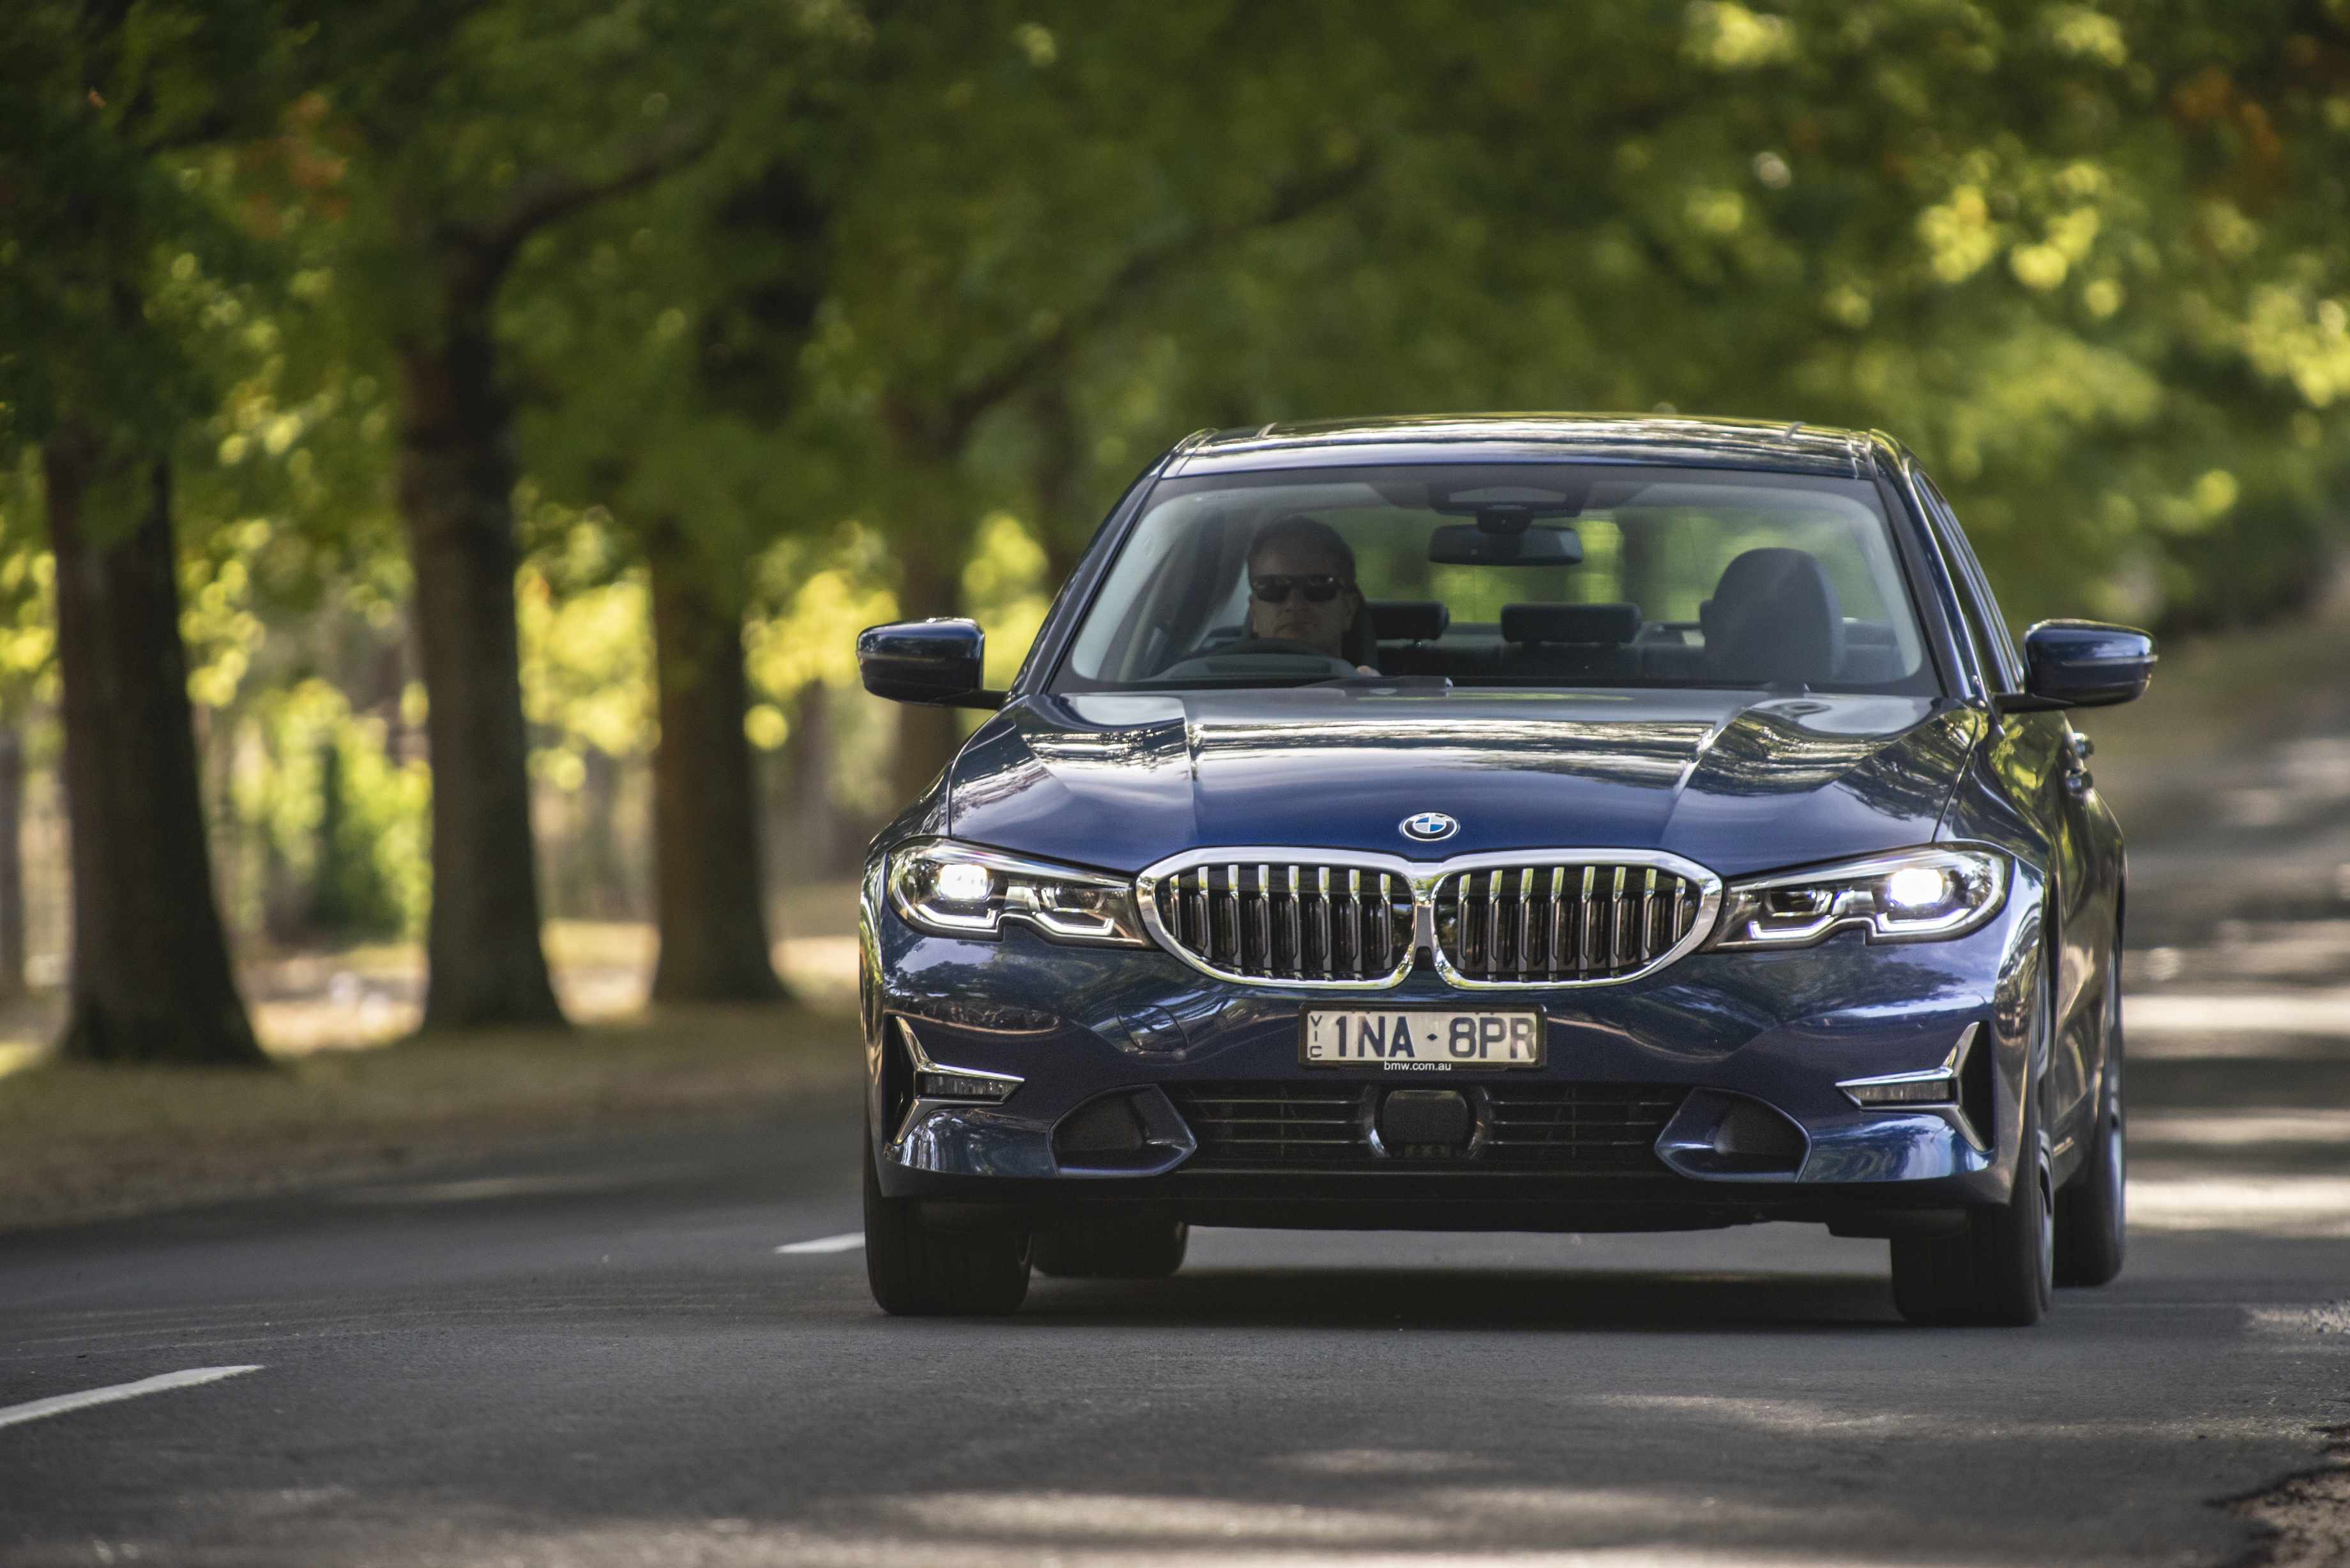 BMW latest generation 330i sedan – much improved but with a sporty ride